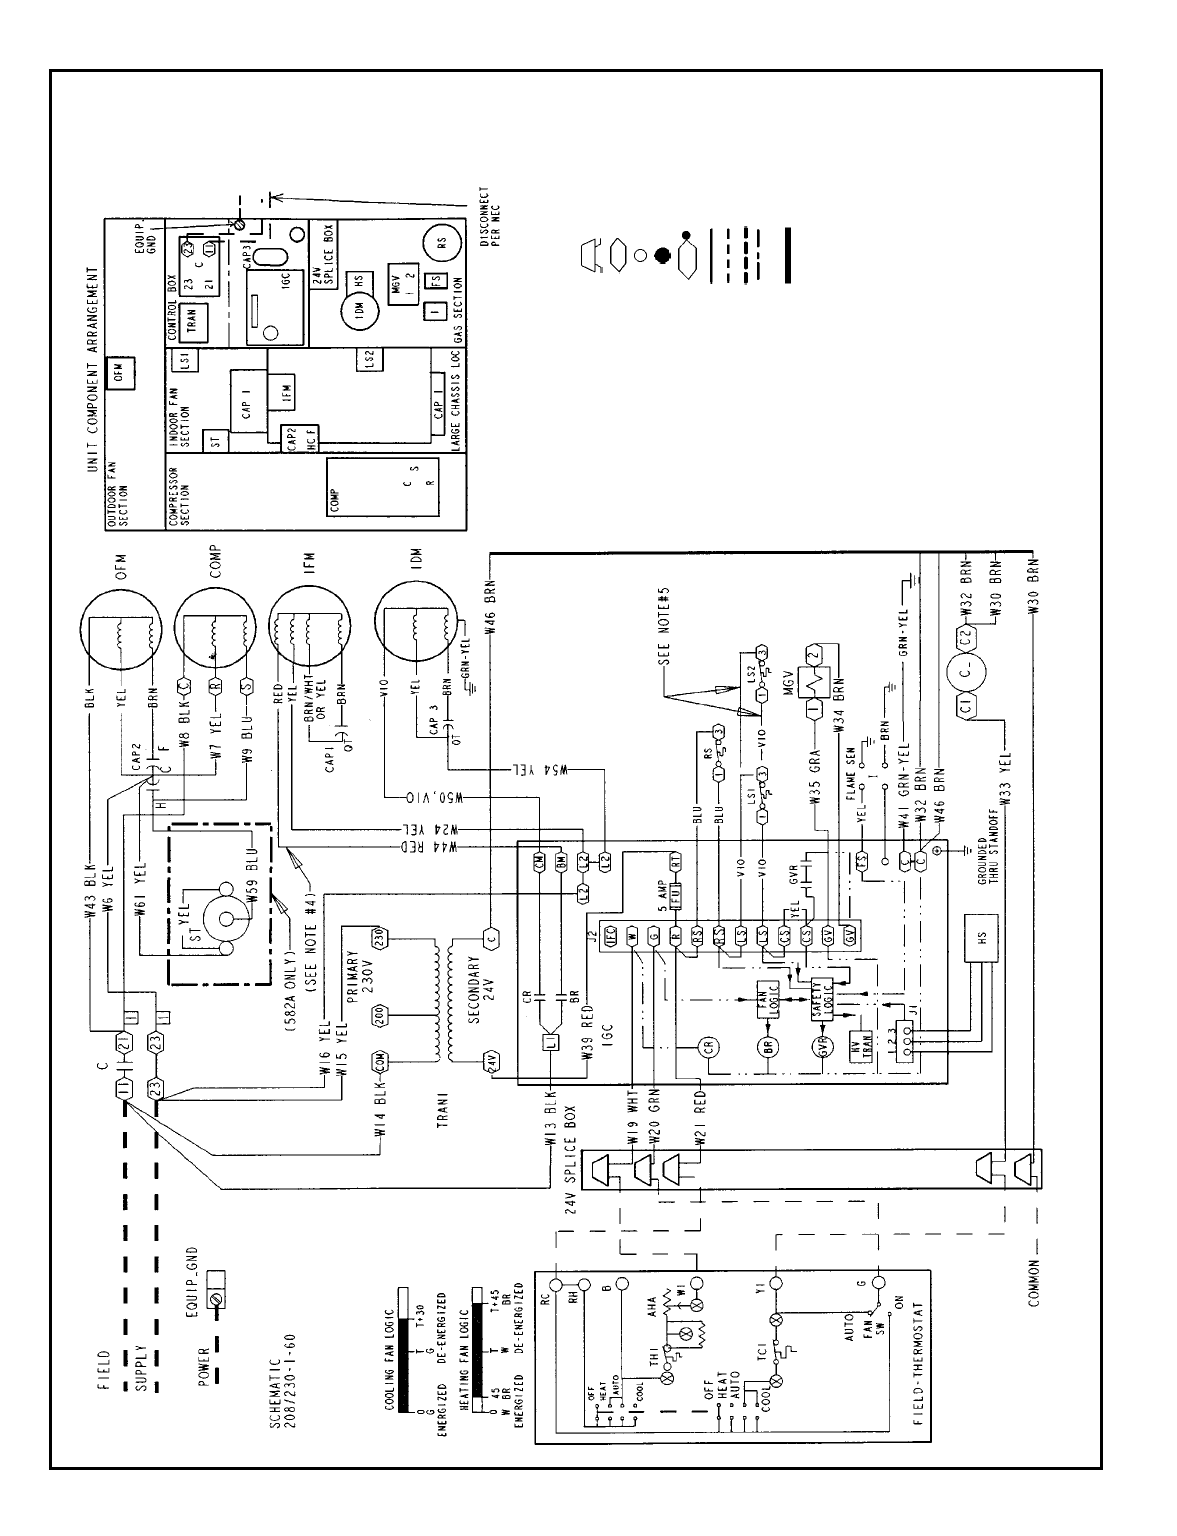 electrical relay hs code